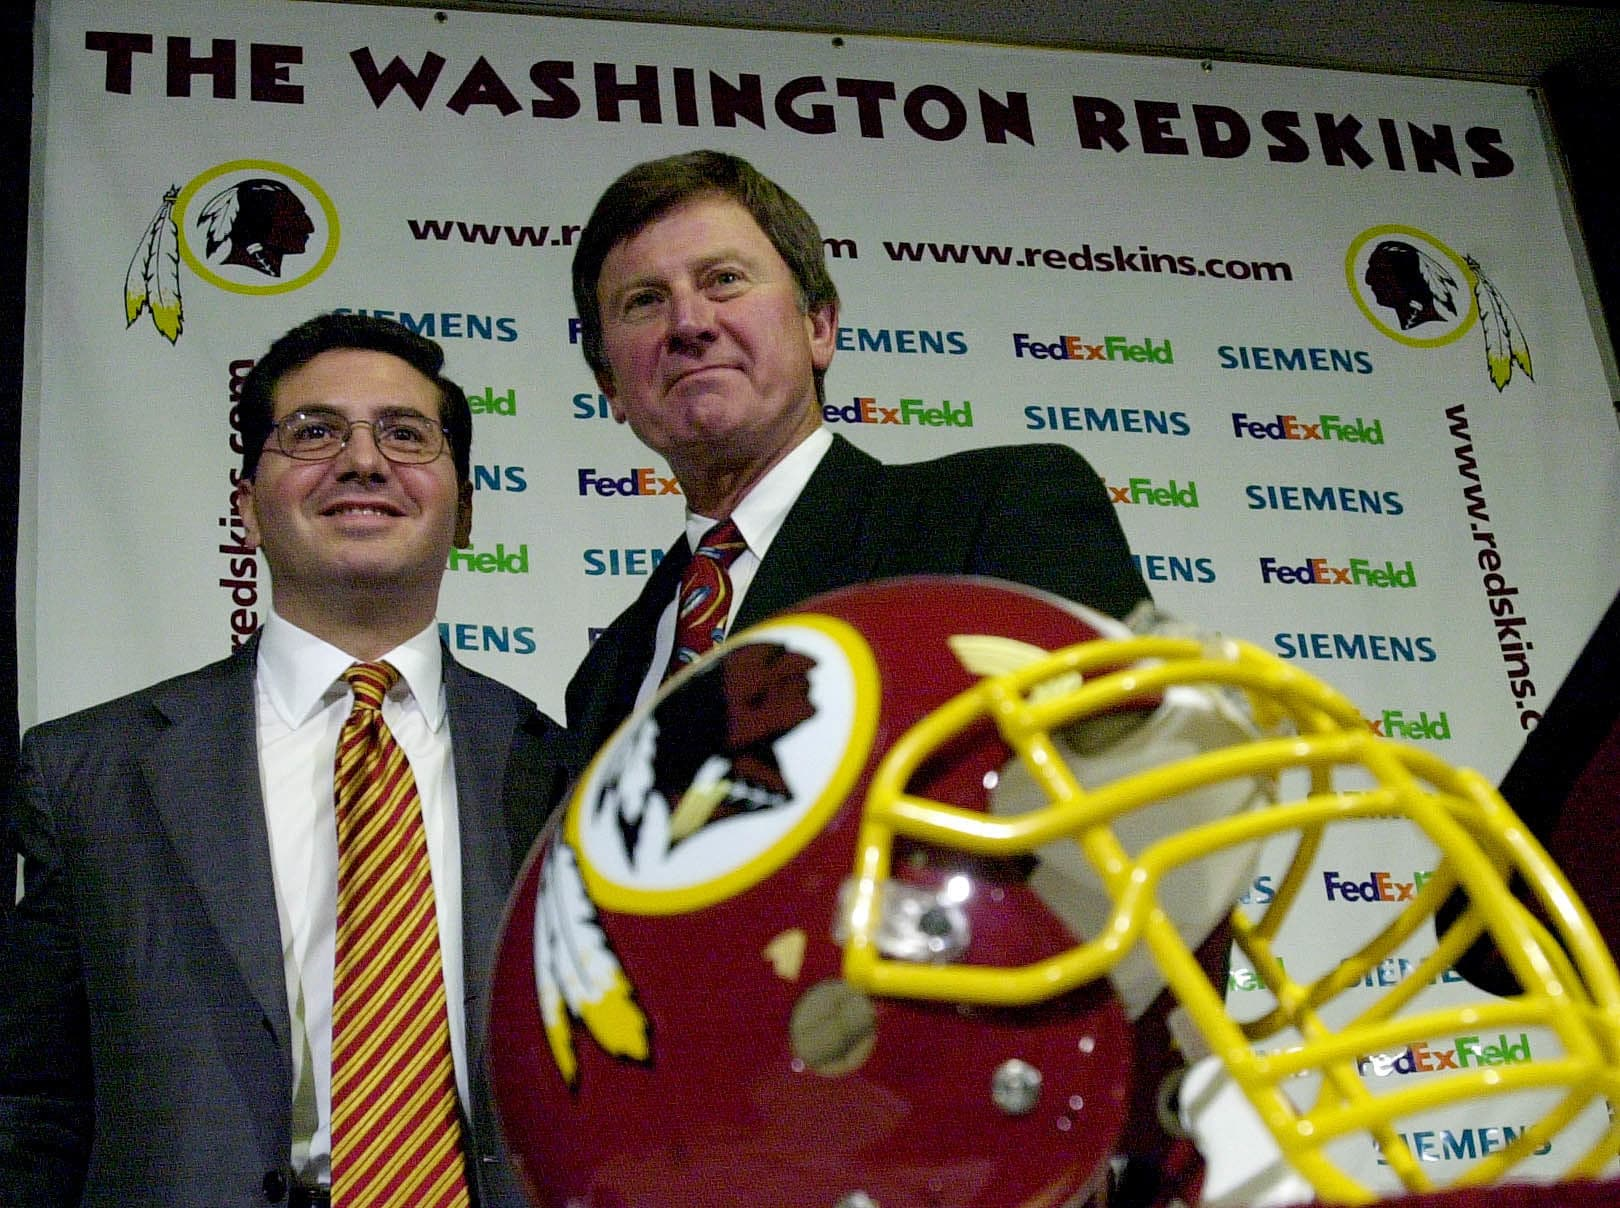 Steve Spurrier, right, is joined by Washington Redskins' owner Daniel Snyder during Spurrier's first news conference as the Redskins' head coach in Ashburn, Va  Tuesday, Jan. 15, 2002 . (AP Photo/Kenneth Lambert)